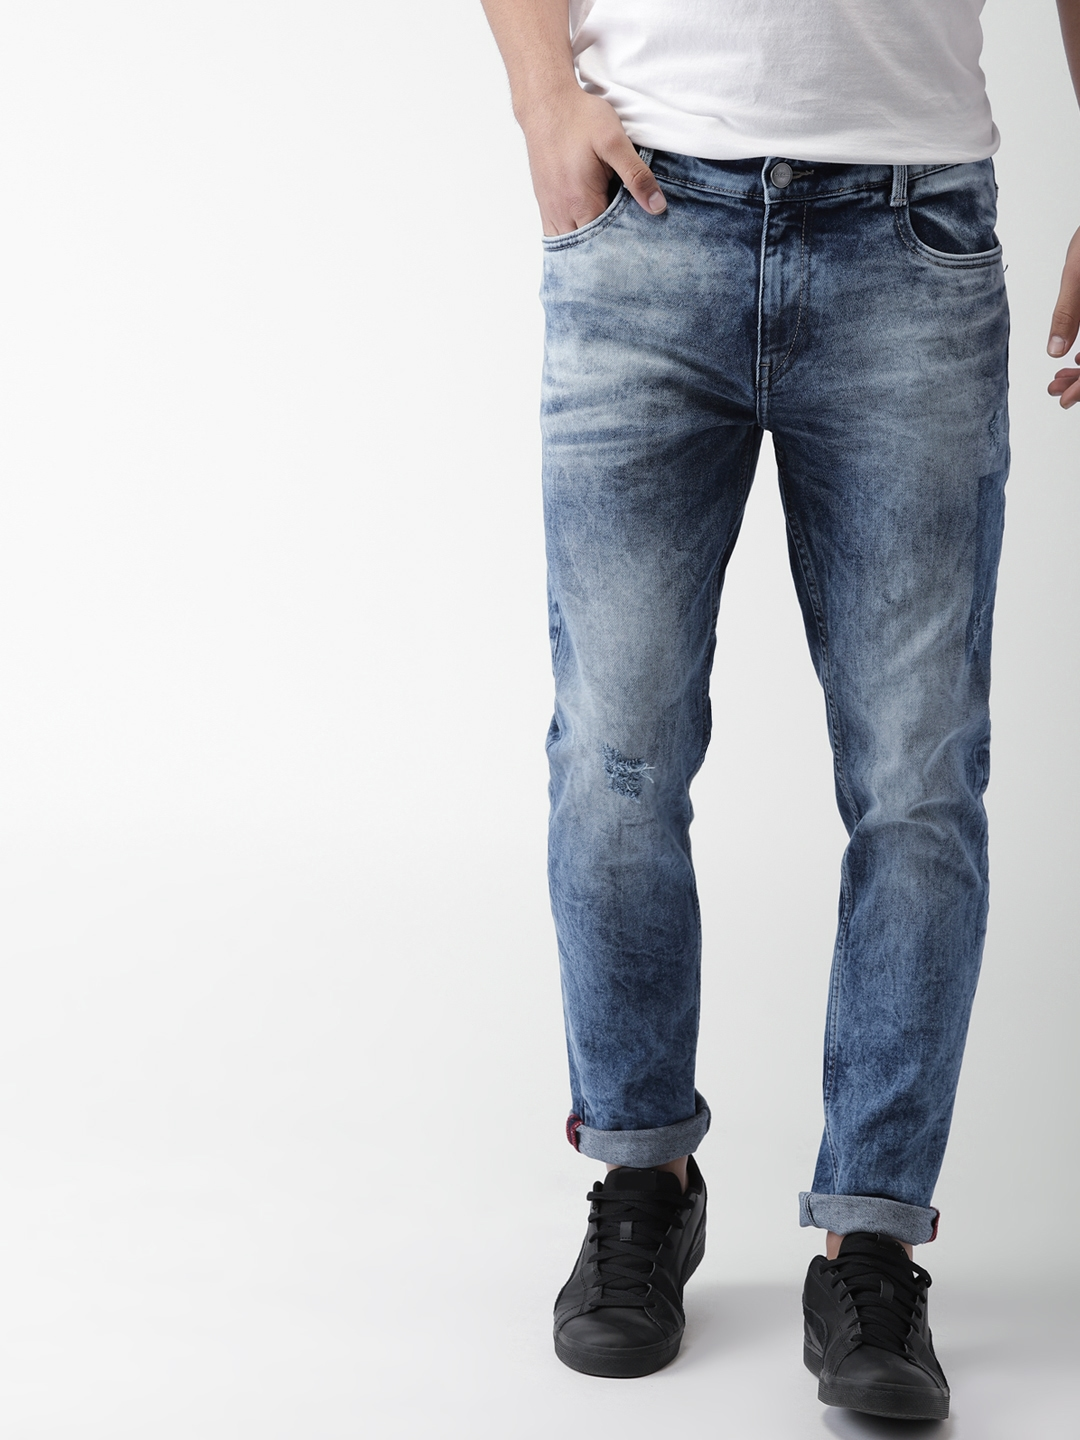 698a5a9e082 Mast   Harbour Men Blue Slim Tapered Fit Mid-Rise Mildly Distressed  Stretchable Jeans